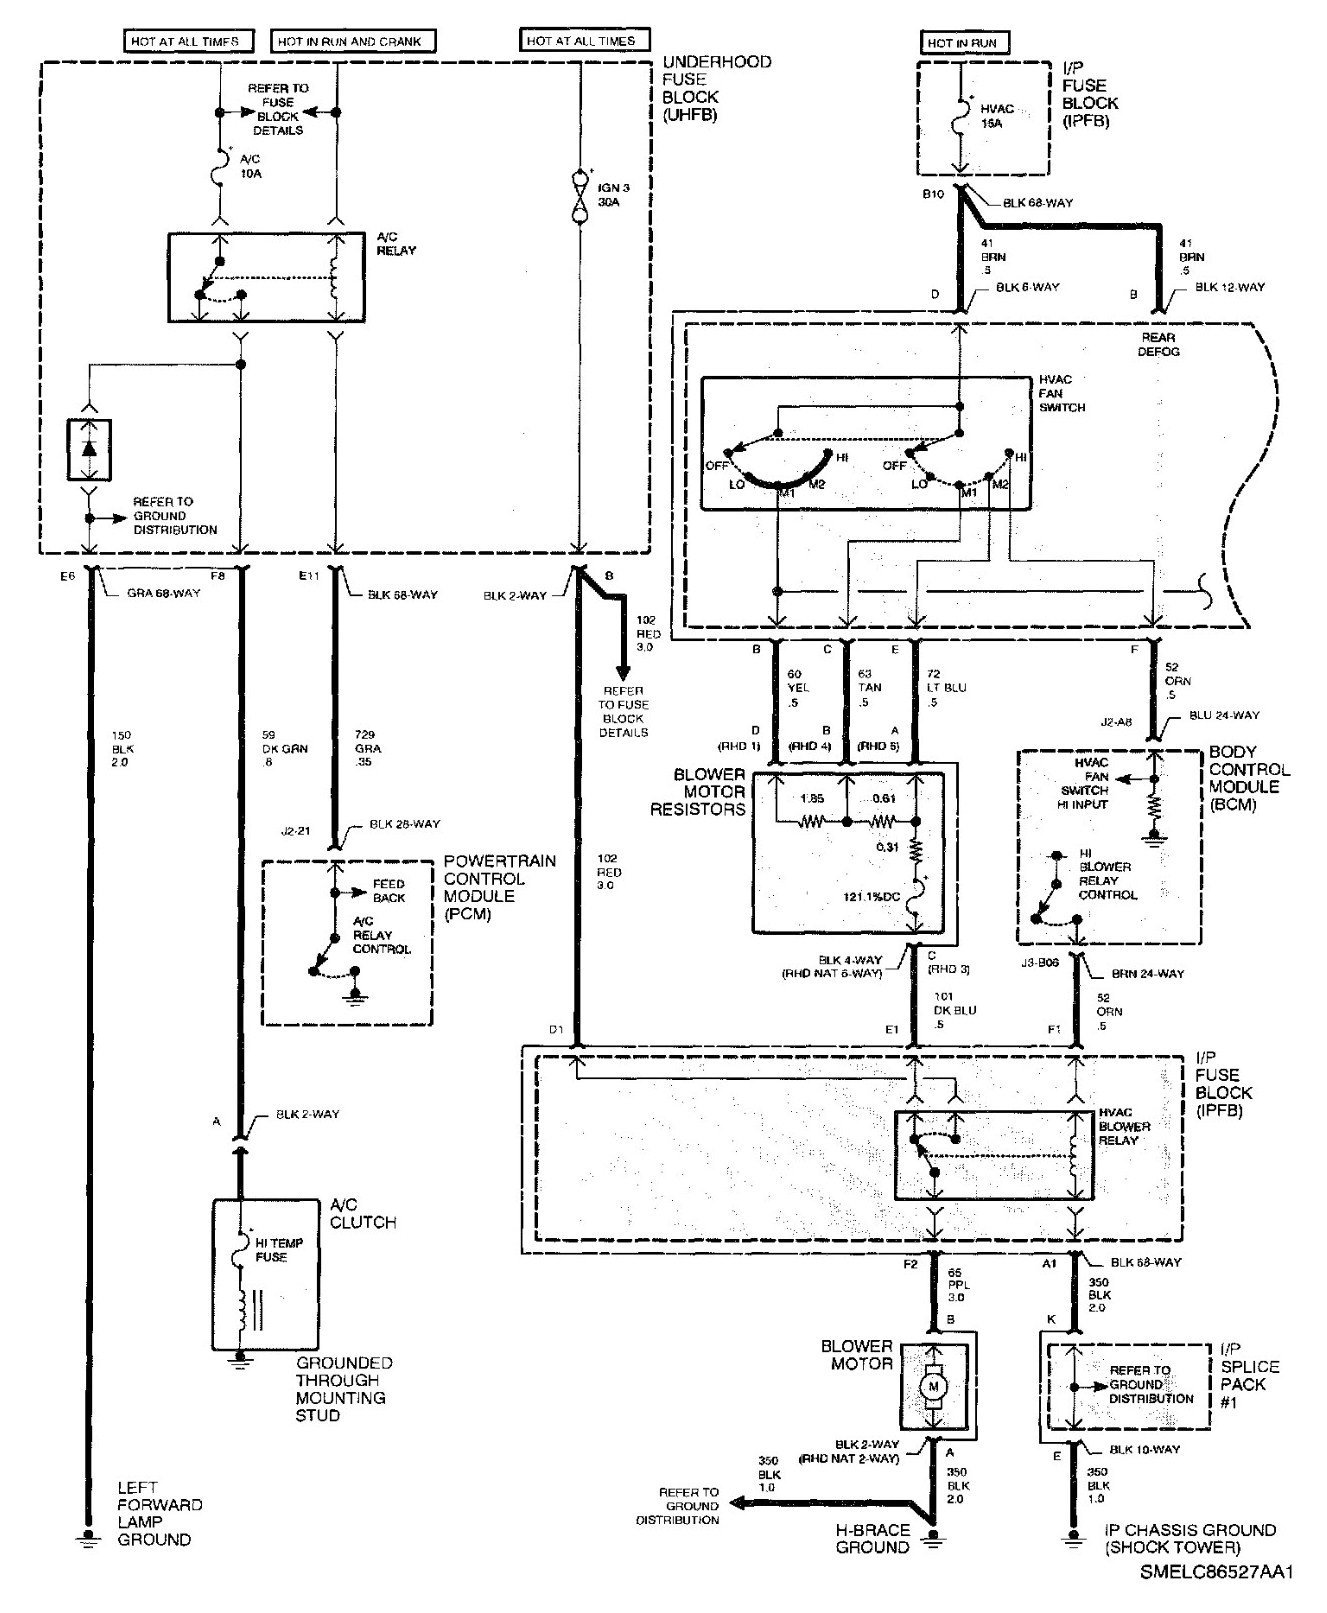 Ford F 250 Sel Fuse Box Diagram furthermore P 0996b43f80cb1031 further Purge Valve Location Buick Lesabre moreover T19659190 Spark plug firing order diagrams subaru furthermore Saturn Transmission Parts Diagram. on 2003 saturn l300 engine diagram